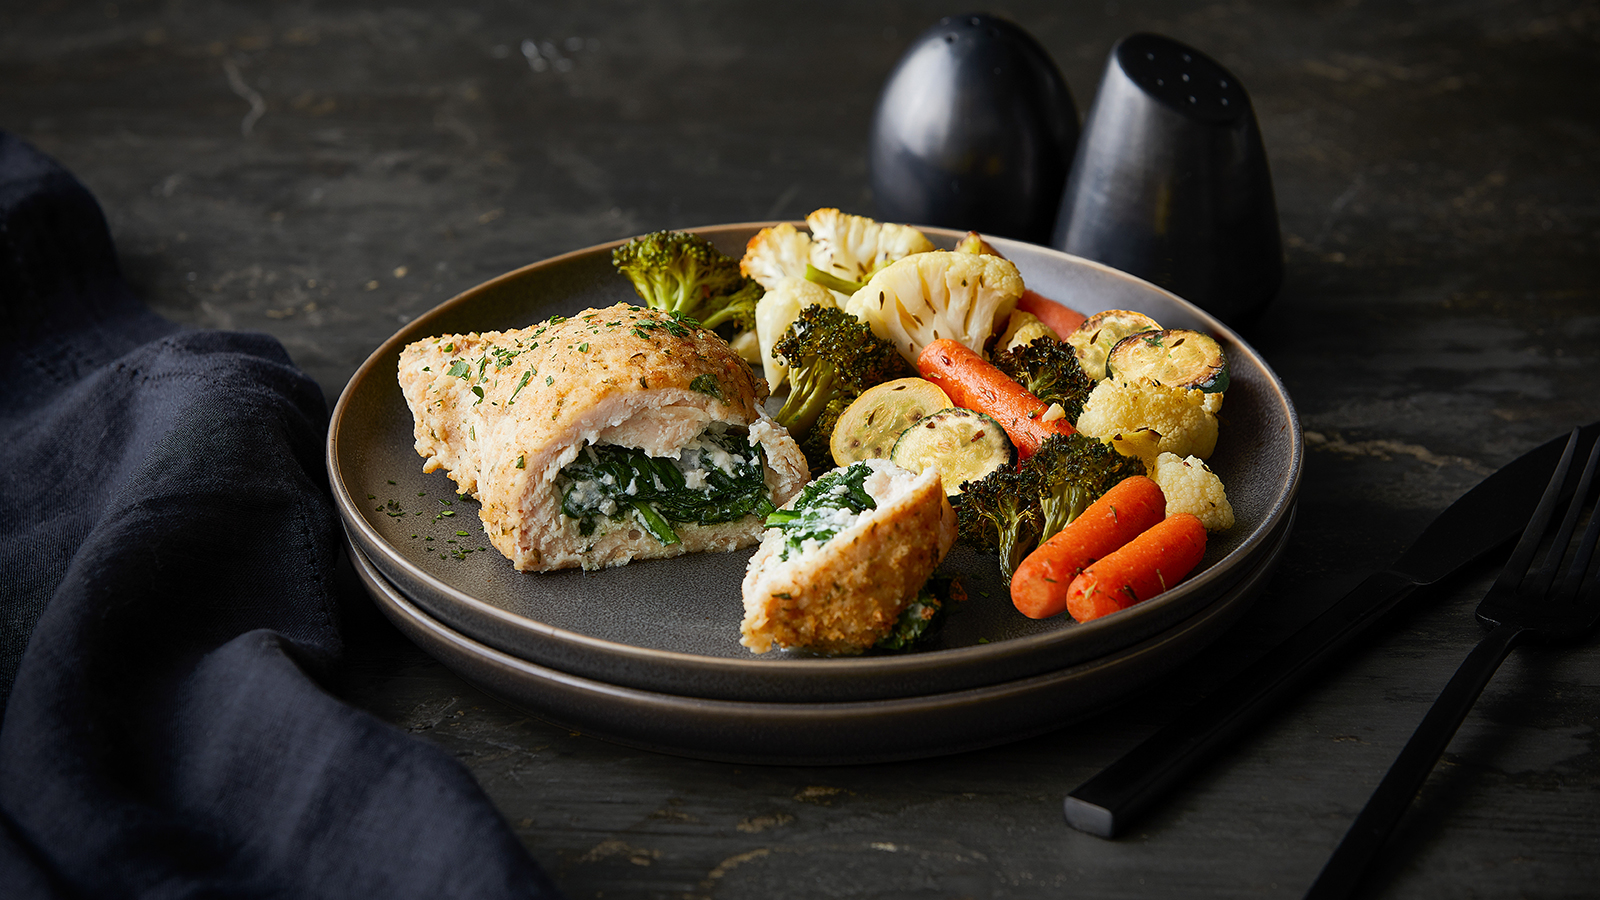 Little Big Meal | Fresh and Easy Meals for 4 - The Fresh Market